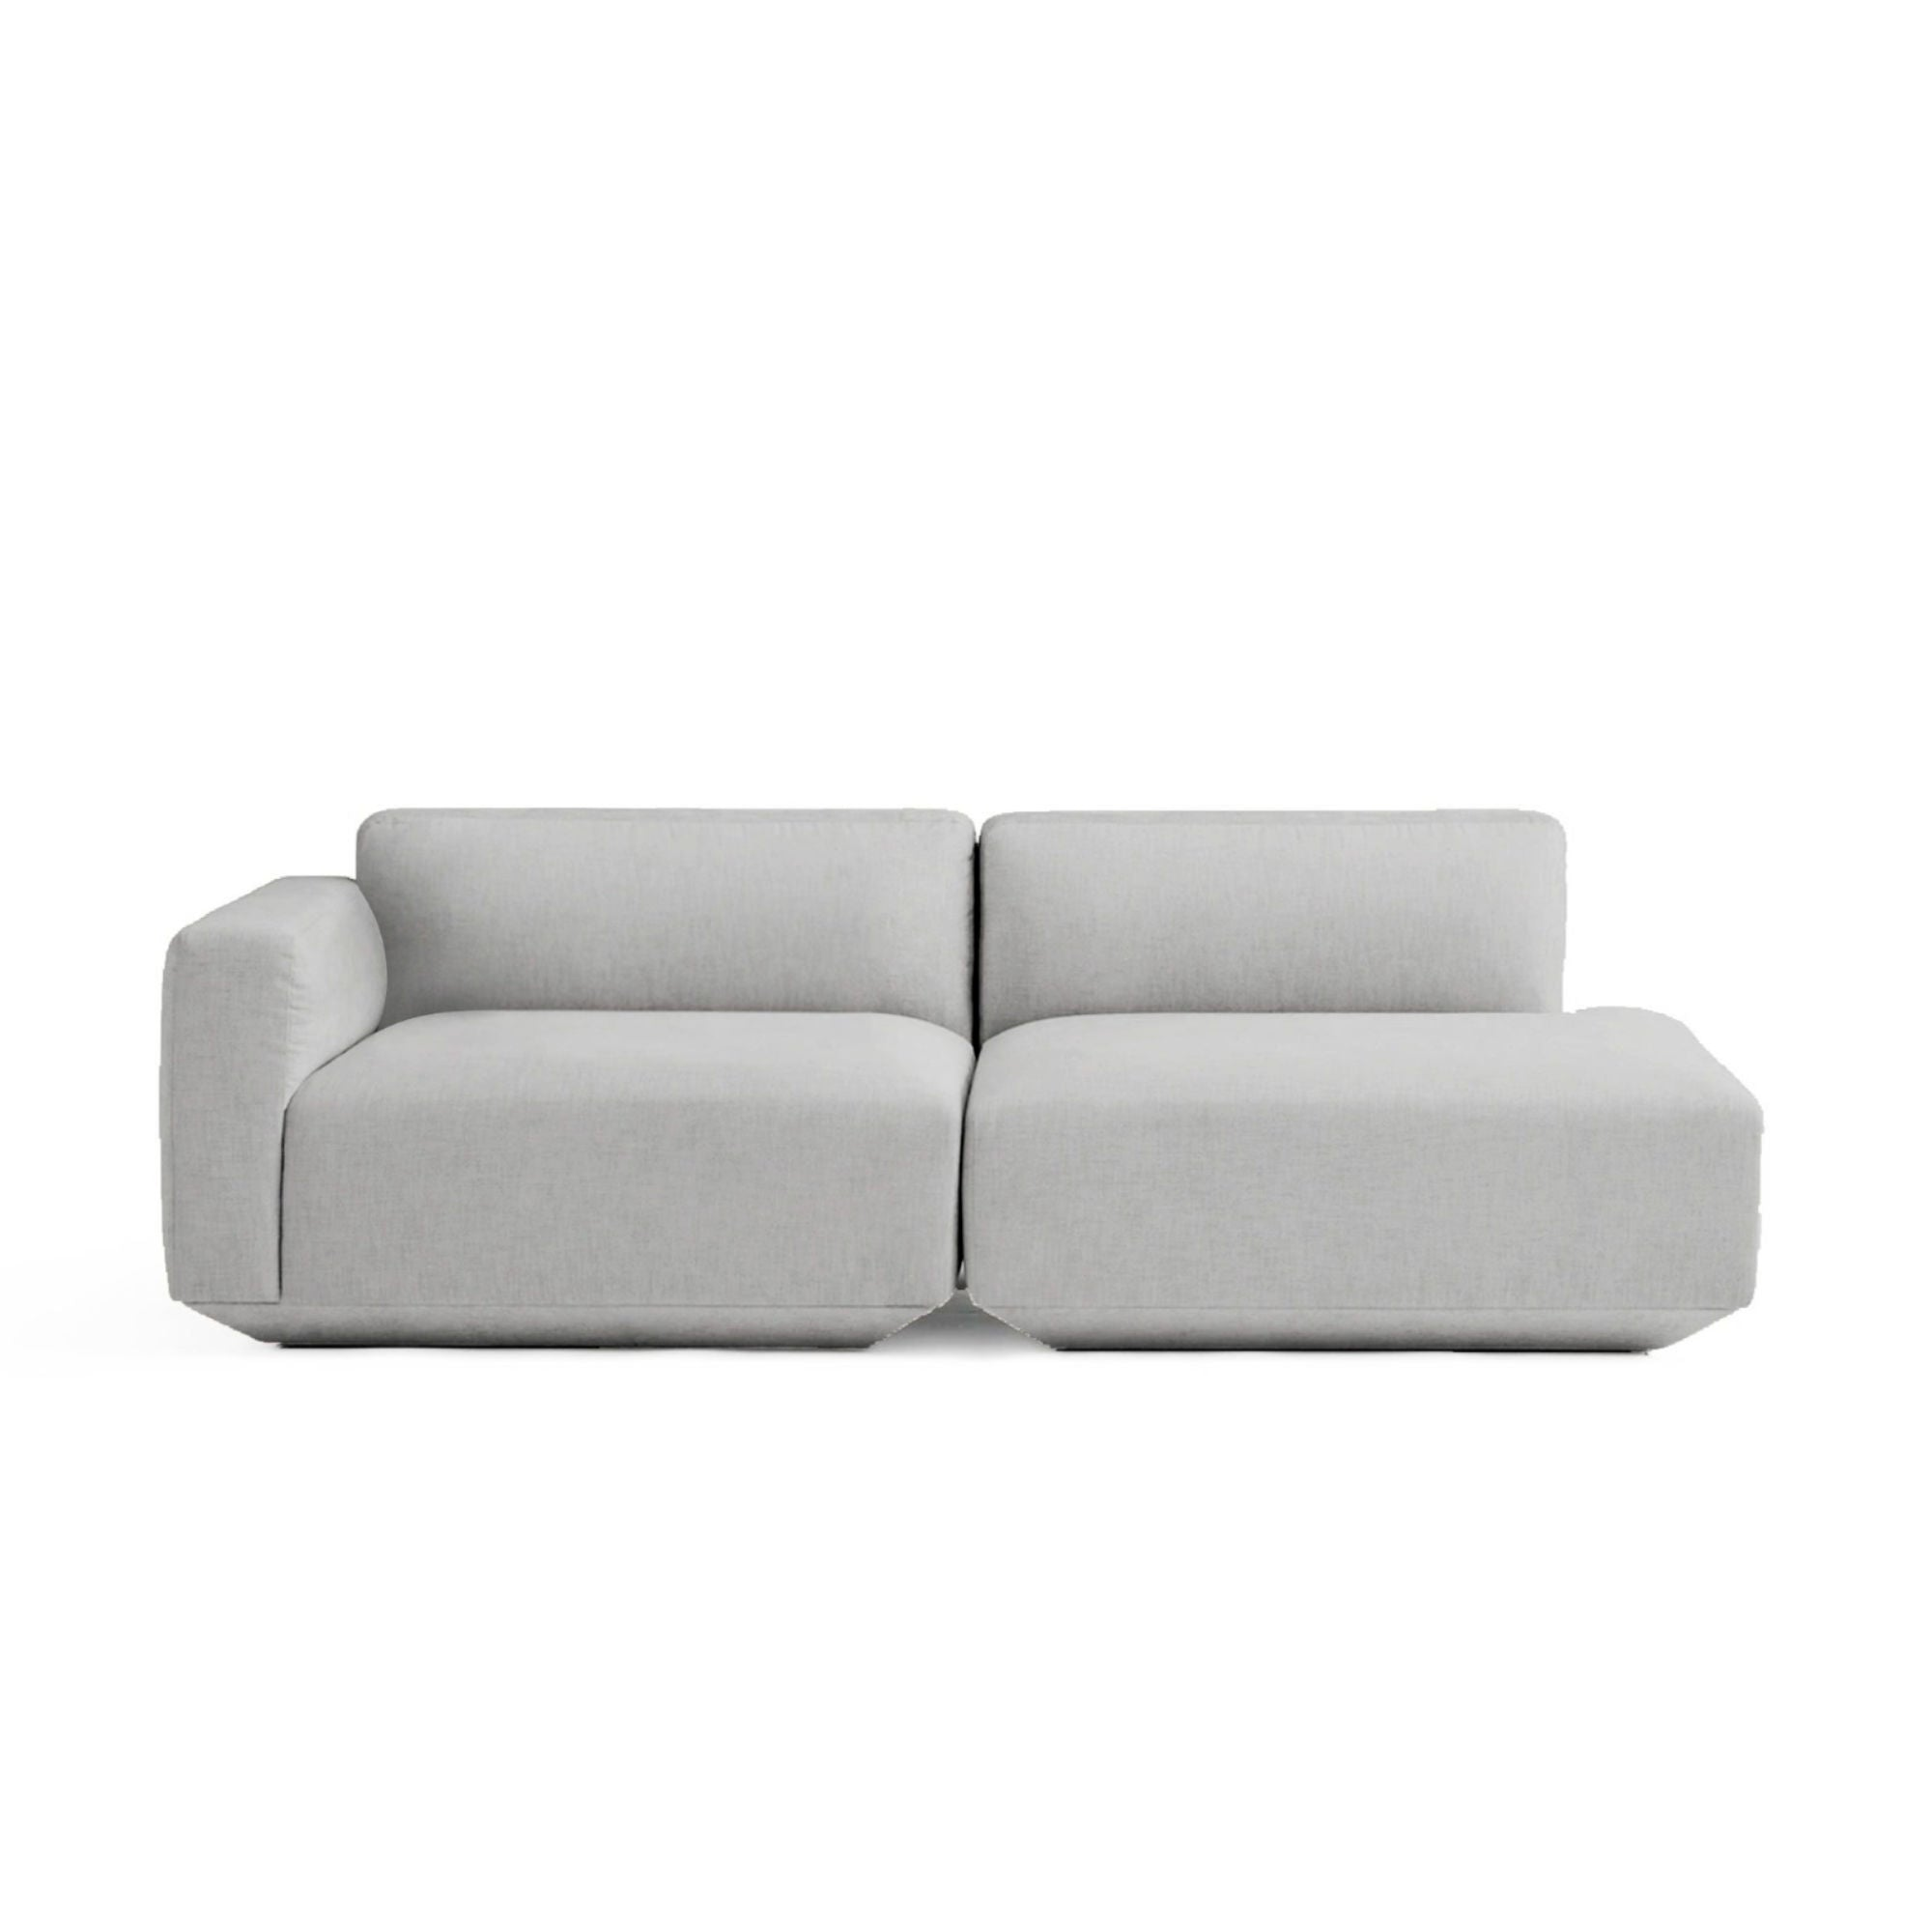 &Tradition Develius Sofa Configuration G , Linara Tweed 443